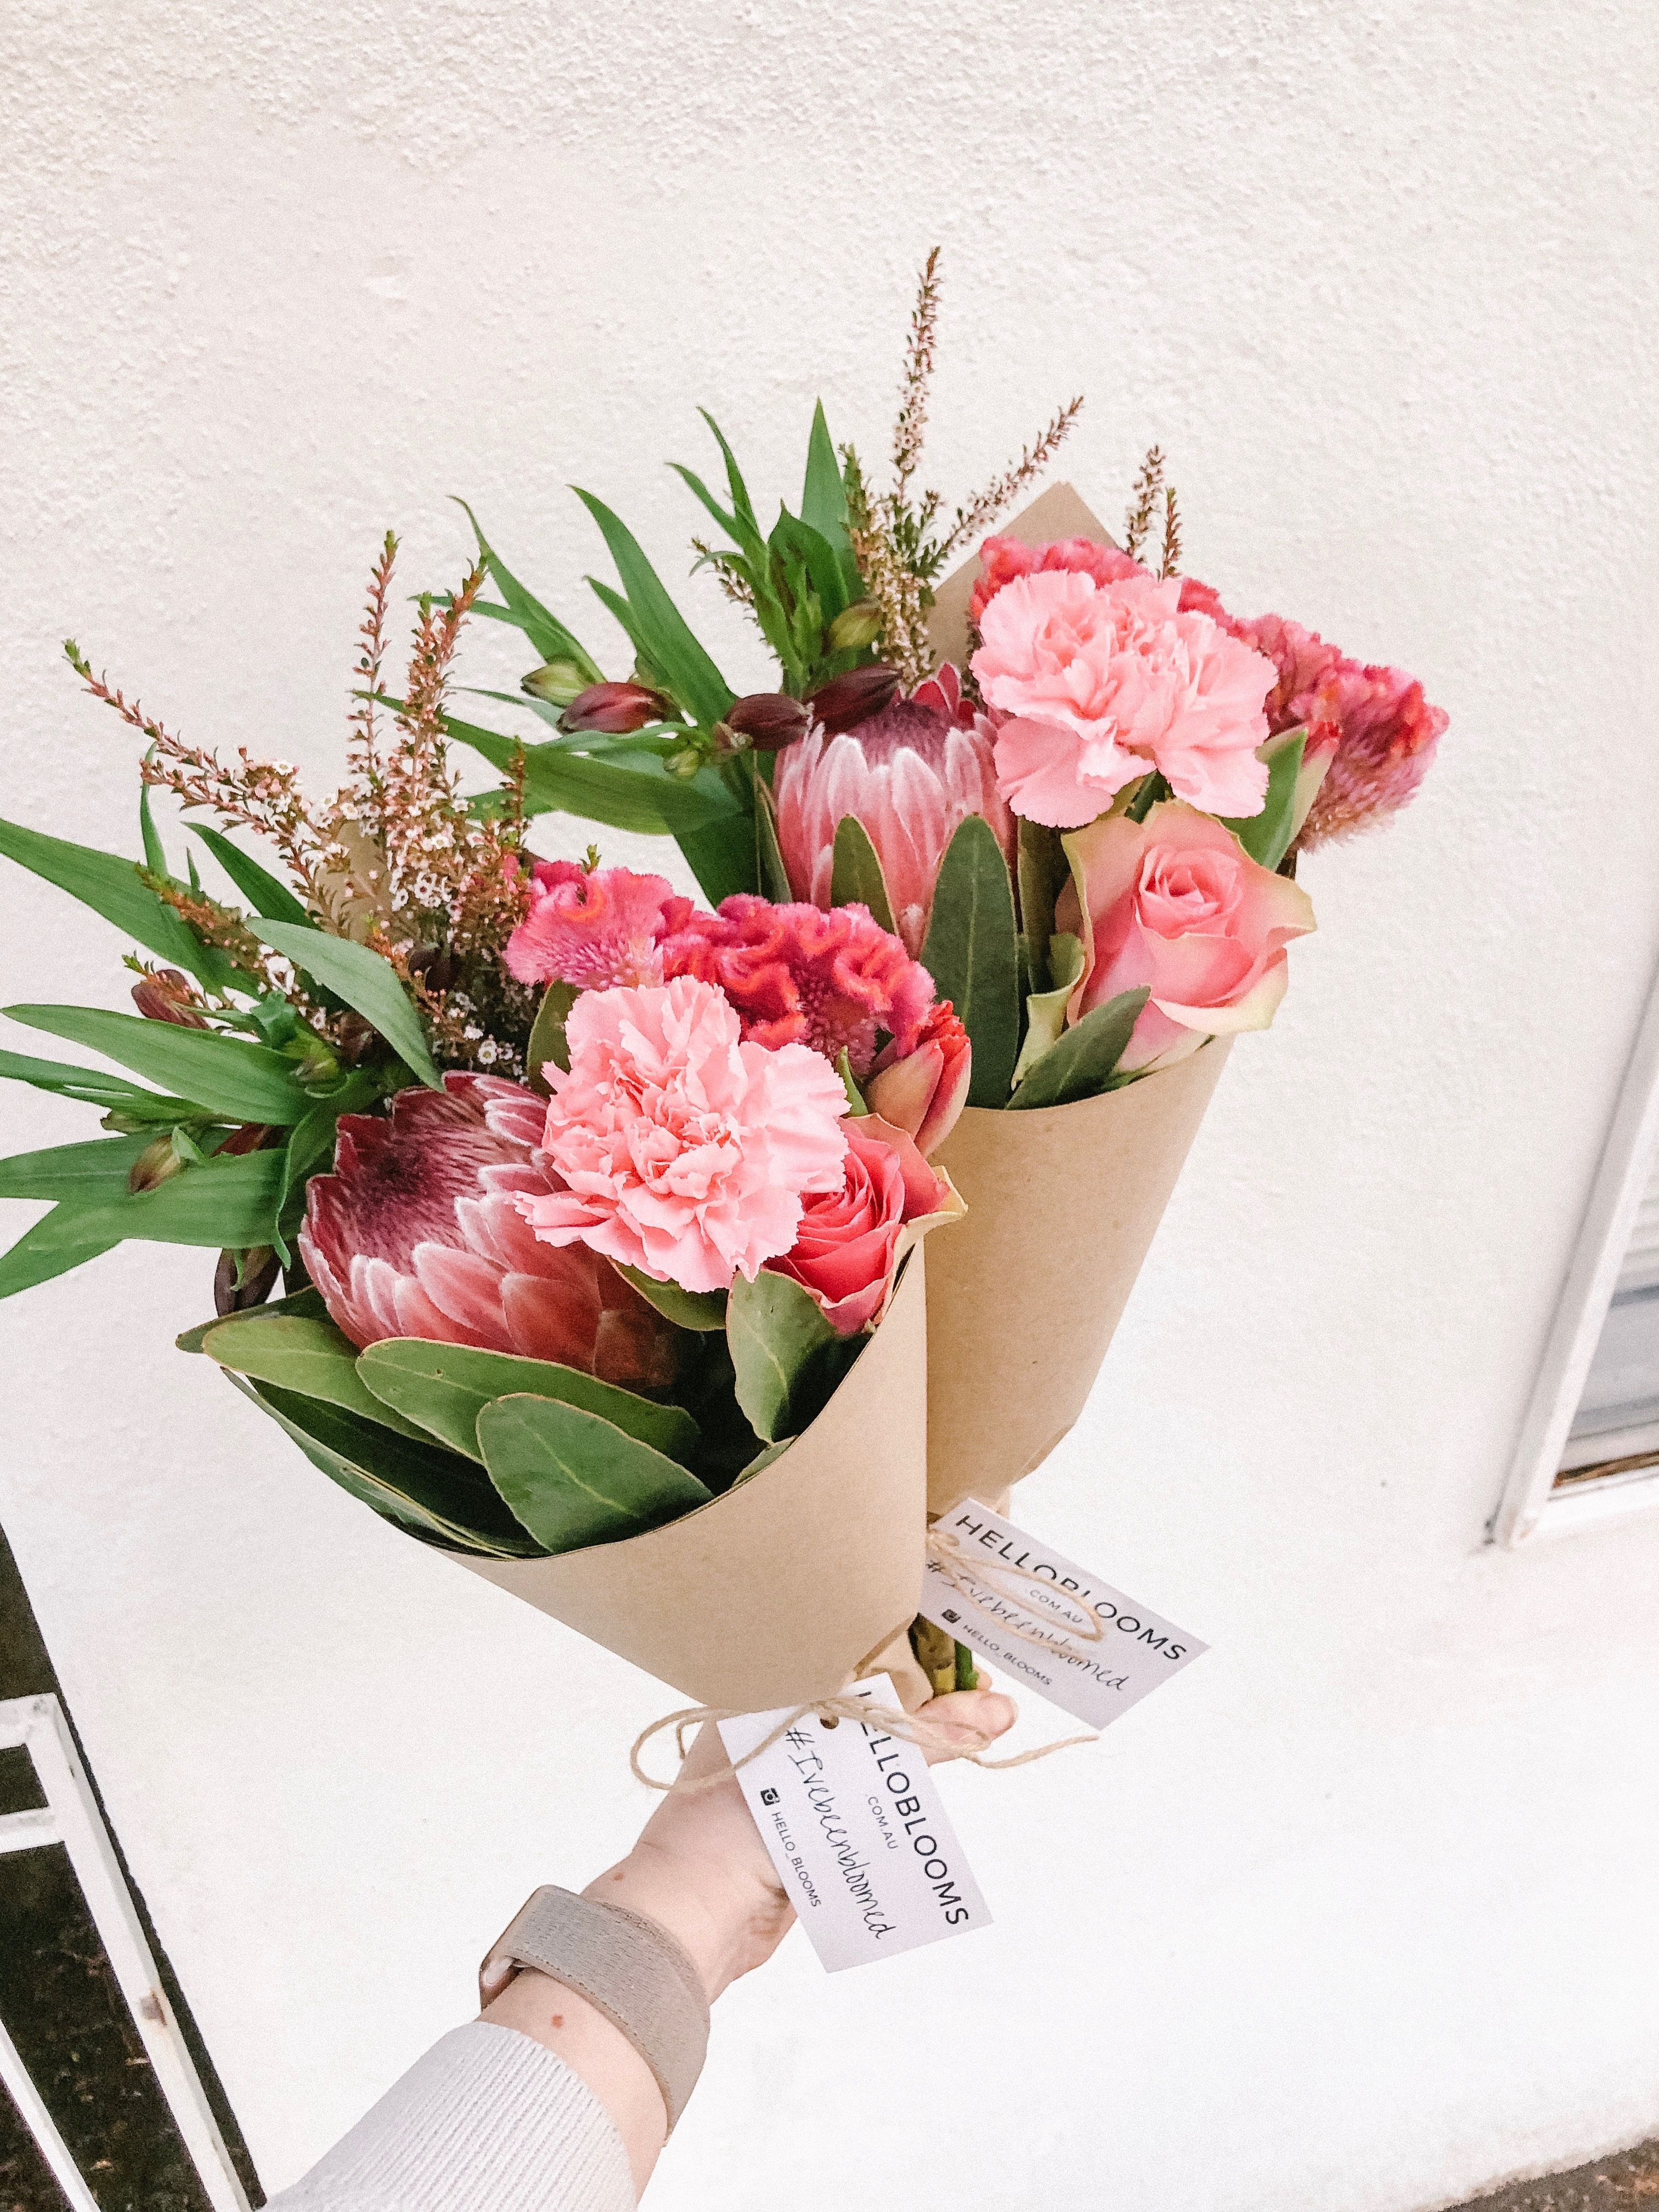 Melbourne Flower Delivery. This posy includes a stunning